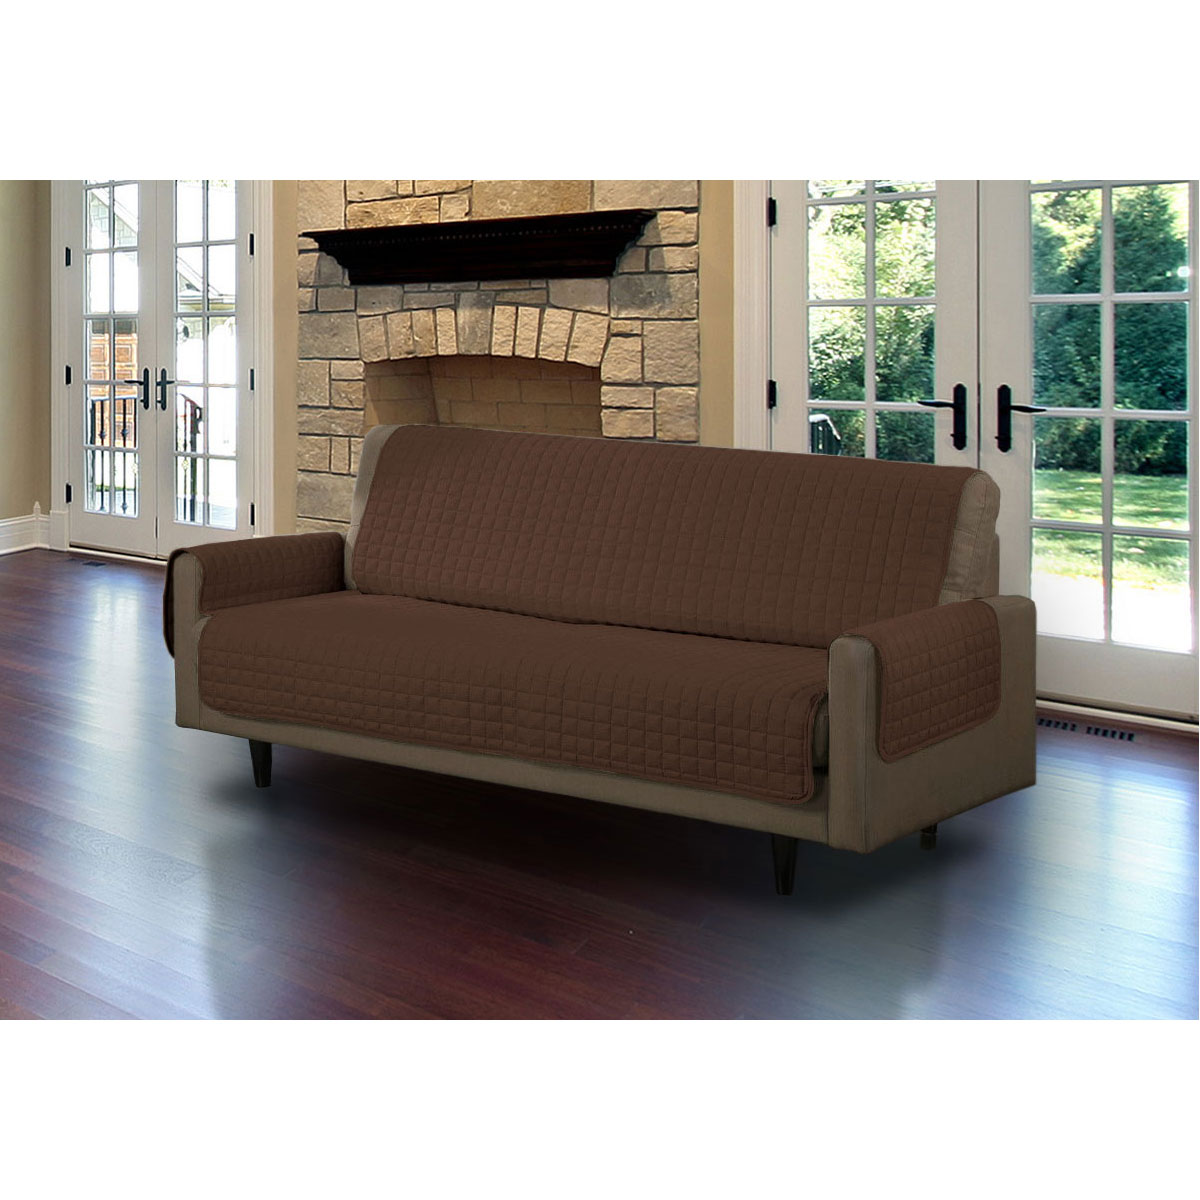 Linen Store Furniture Cover, Pet Protector, Micro Suede [Brown, Sofa]